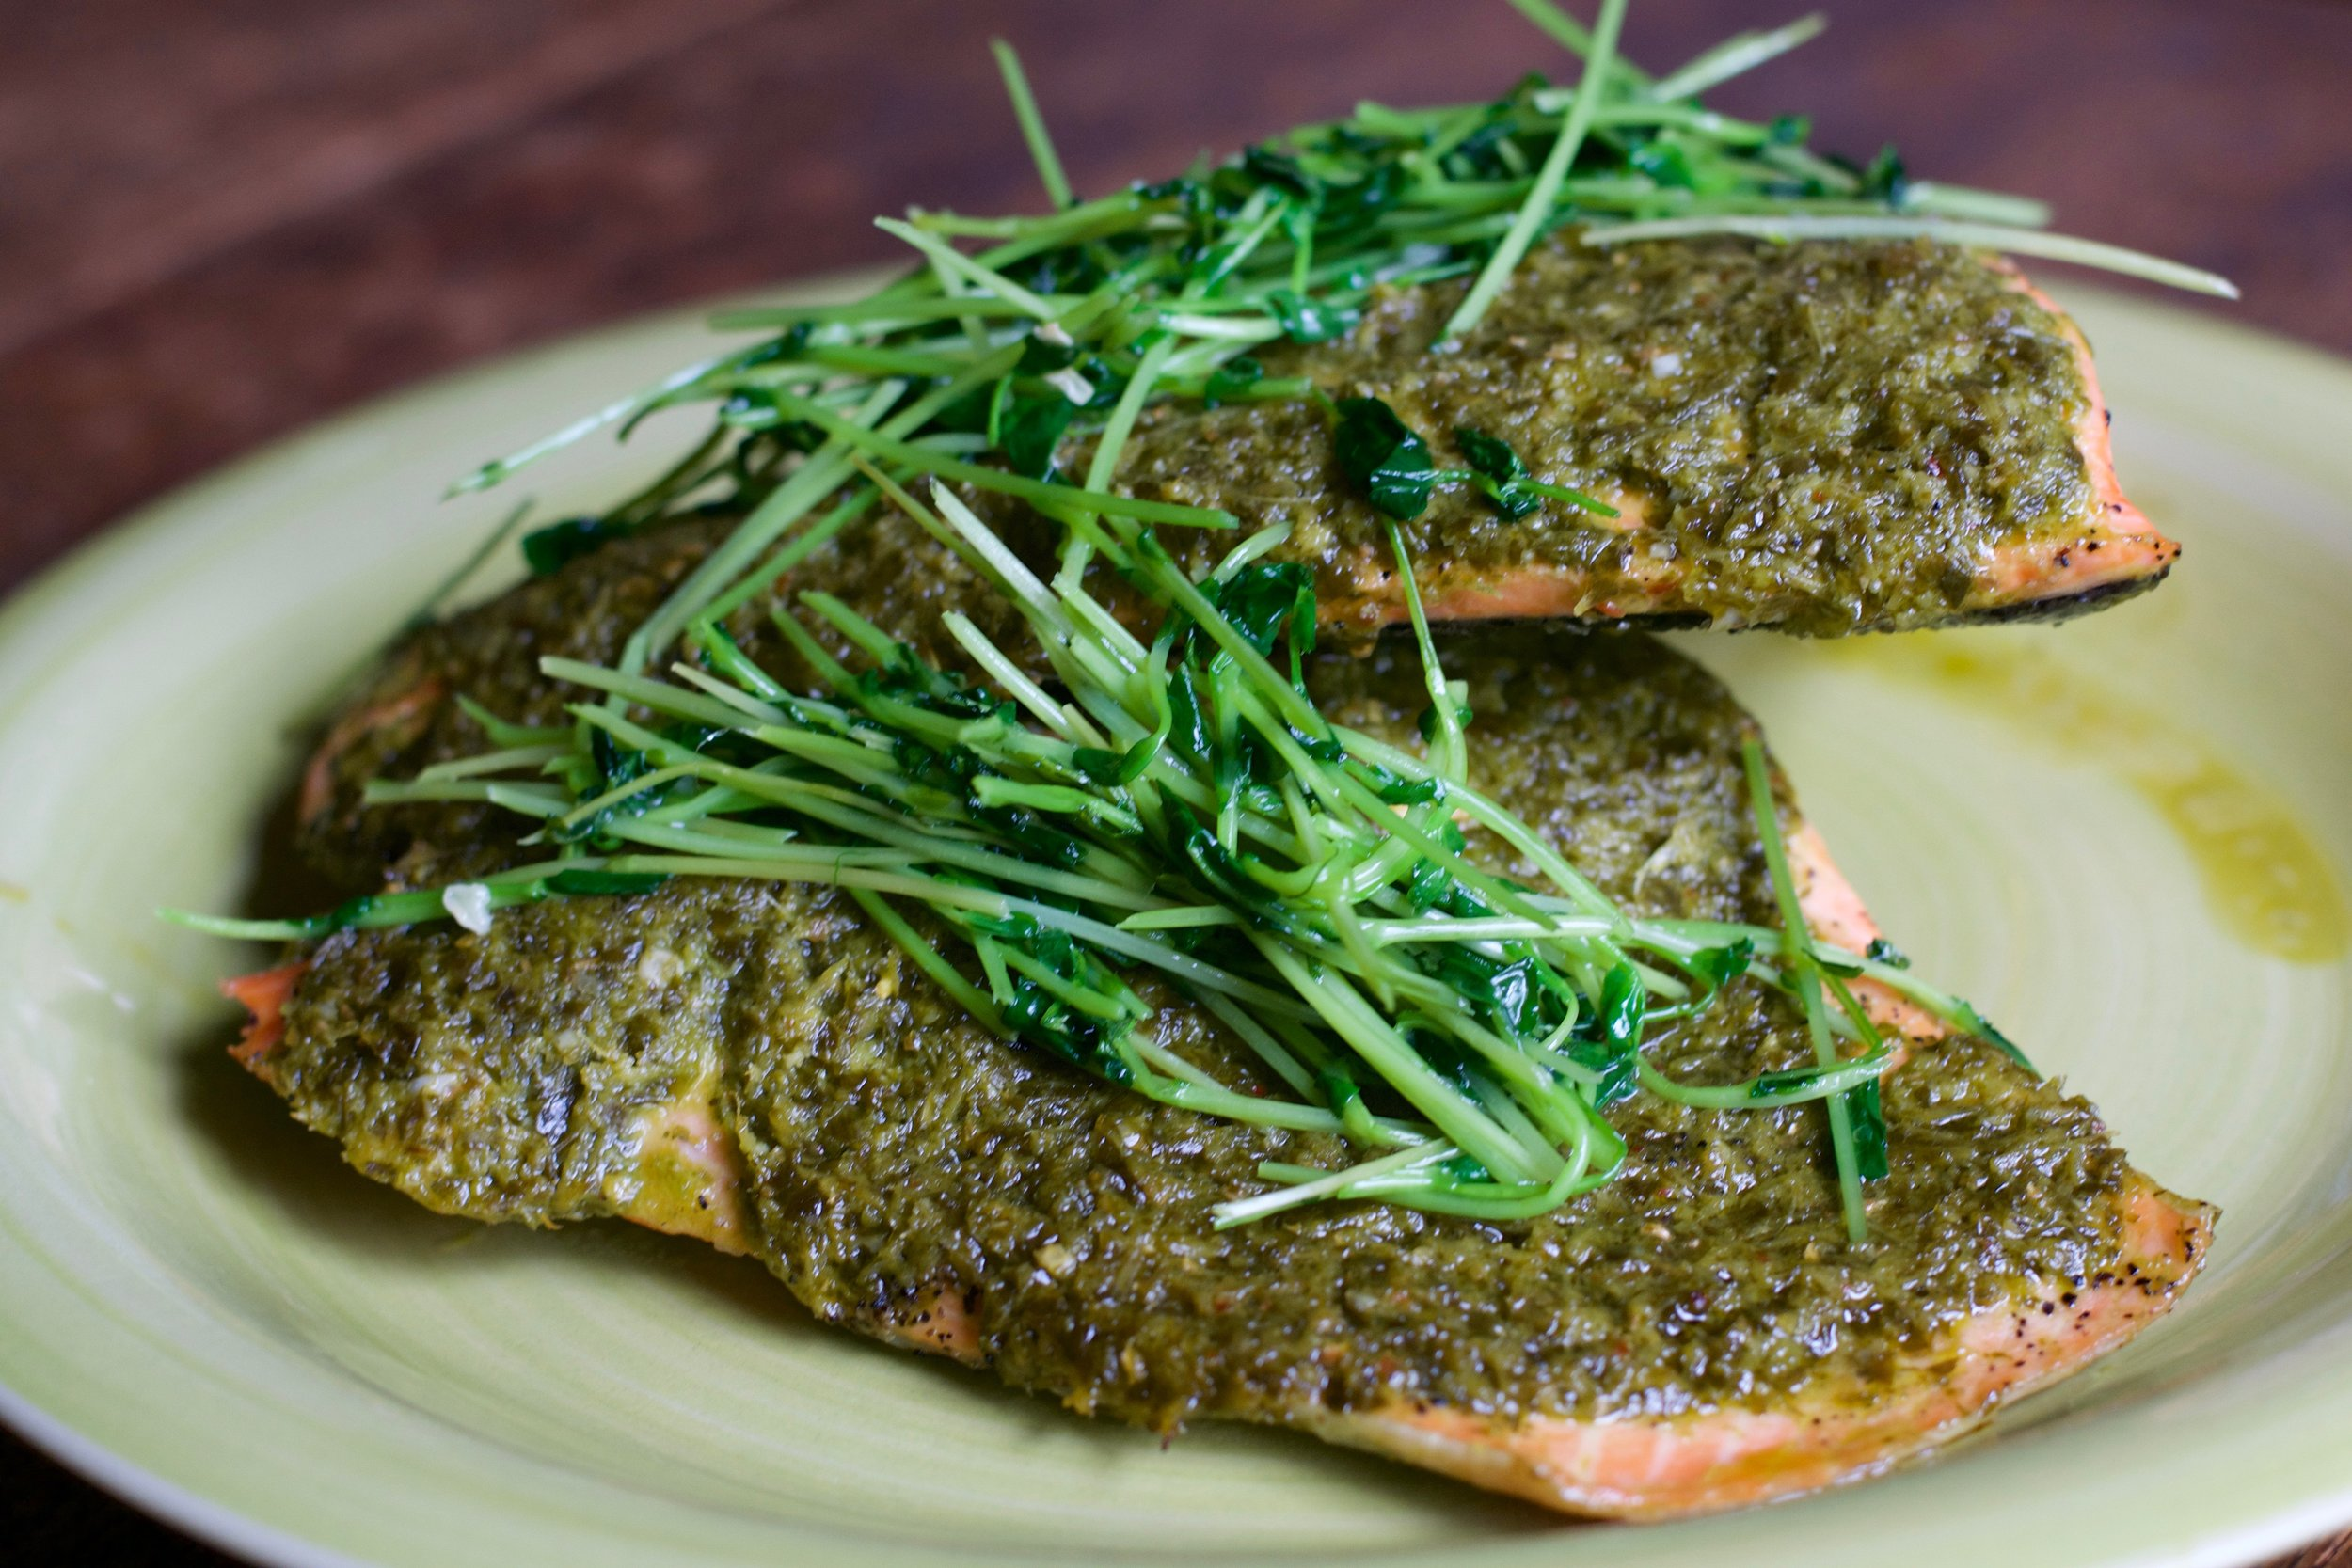 Baked Salmon with Chermoulah and Sauteed Pea Shoots